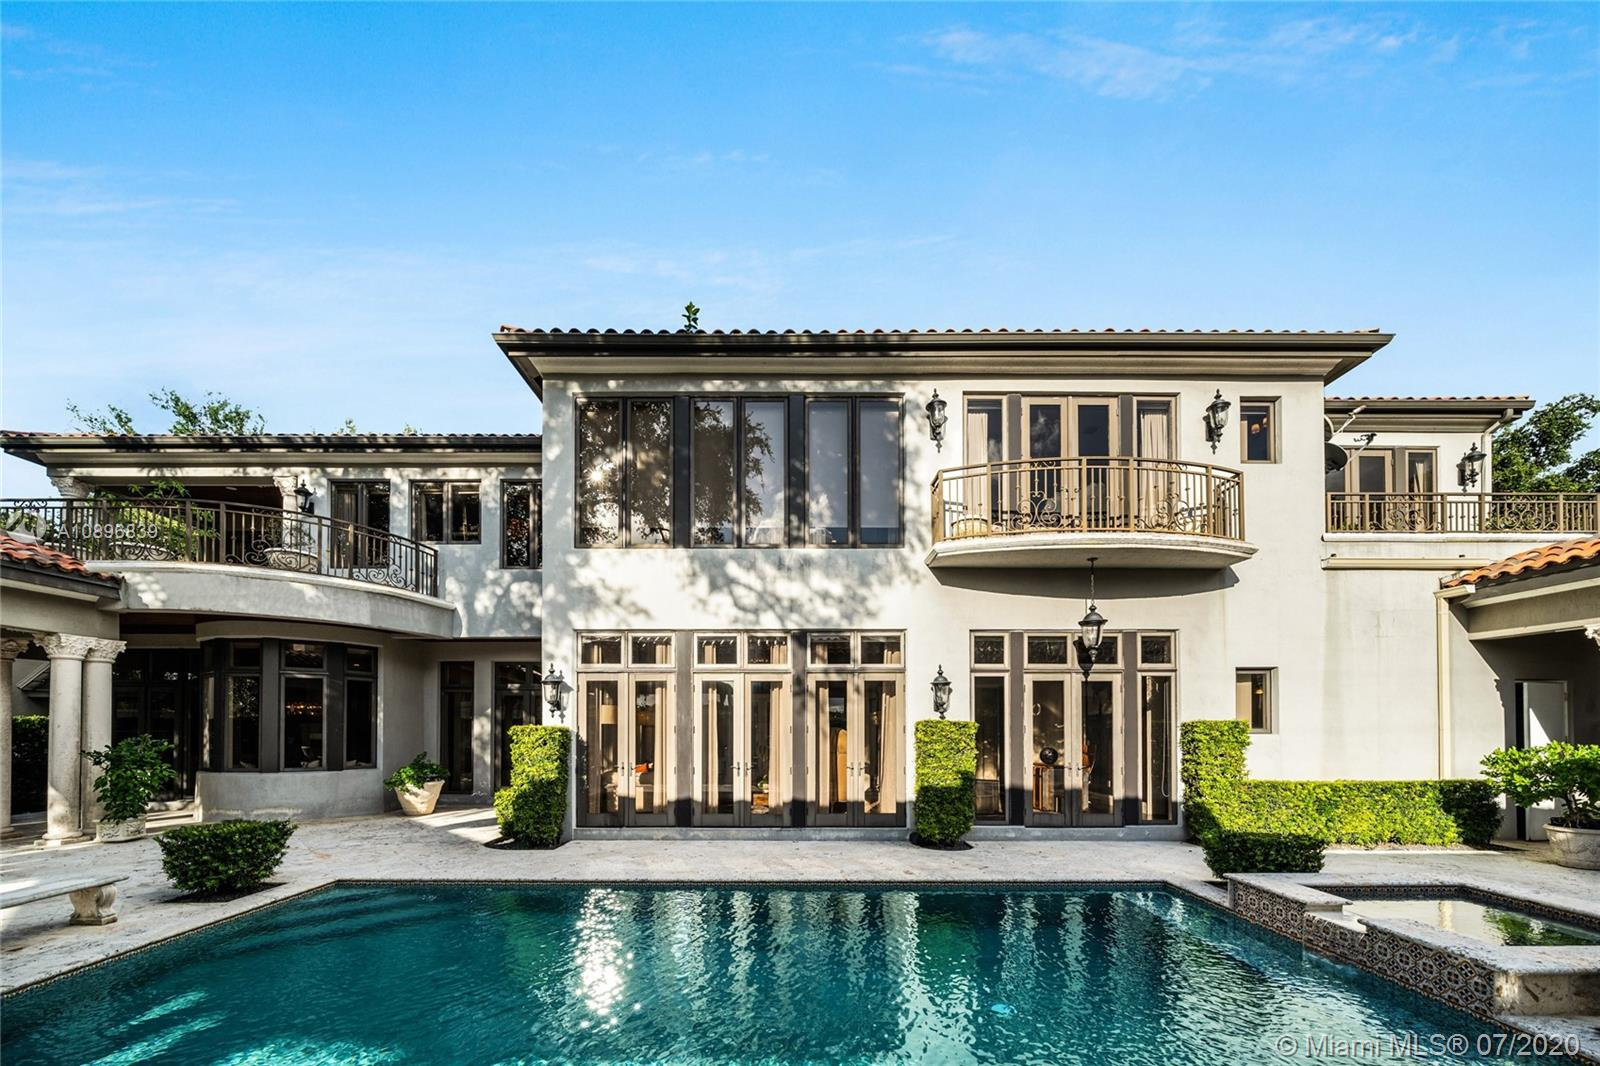 Built in 2008 and designed by Architect Thomas Benedict, this charming Estate Home is located in the heart of the Gables set directly in front of the 5th hole of the Riviera Golf Course. With more than 5,800SF of living space this home has 6 bedrooms, 6.5 bathrooms, formal dining with adjacent wine cellar, fireplace, elevator, eat-in gourmet kitchen with family room, high ceilings, upstairs sitting area, surround sound system and more. Enjoy a private outdoor oasis with a covered patio surrounding the heated pool and spa, Summer kitchen with outdoor fireplace and a separate 1 bedroom, 1 bathroom pool house all overlooking the Riviera Golf Course.